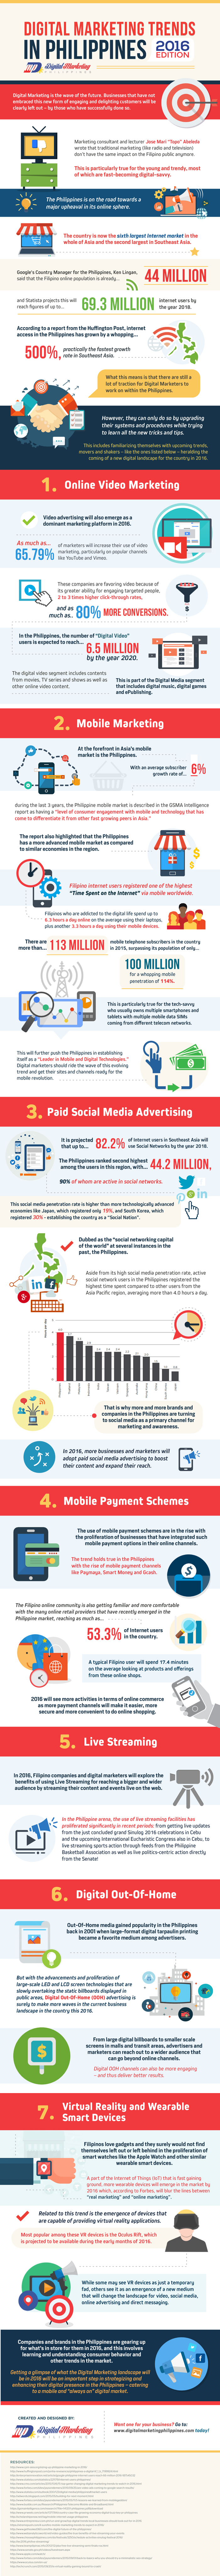 Digital-Marketing-Philippines-Trends-for-2016